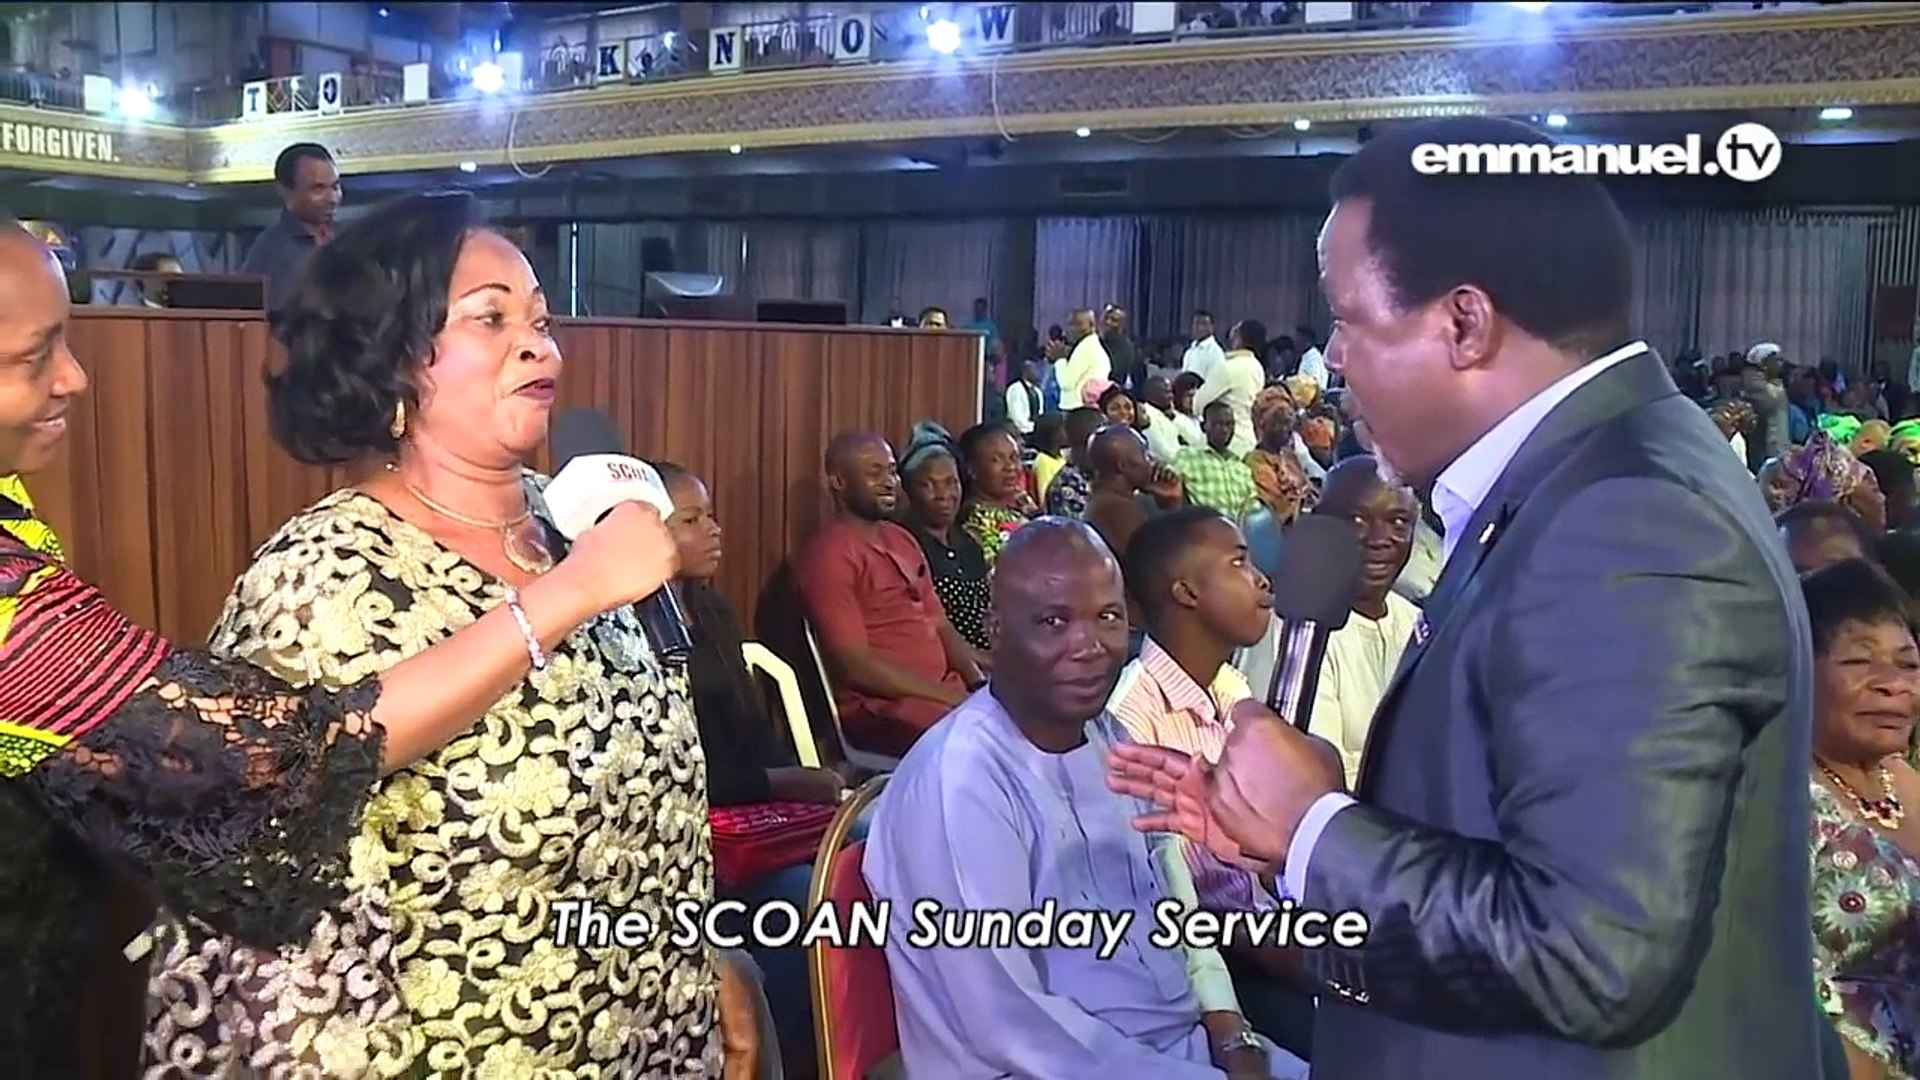 WATCH WHAT MADE T B  JOSHUA LAUGH OUT LOUD!!!